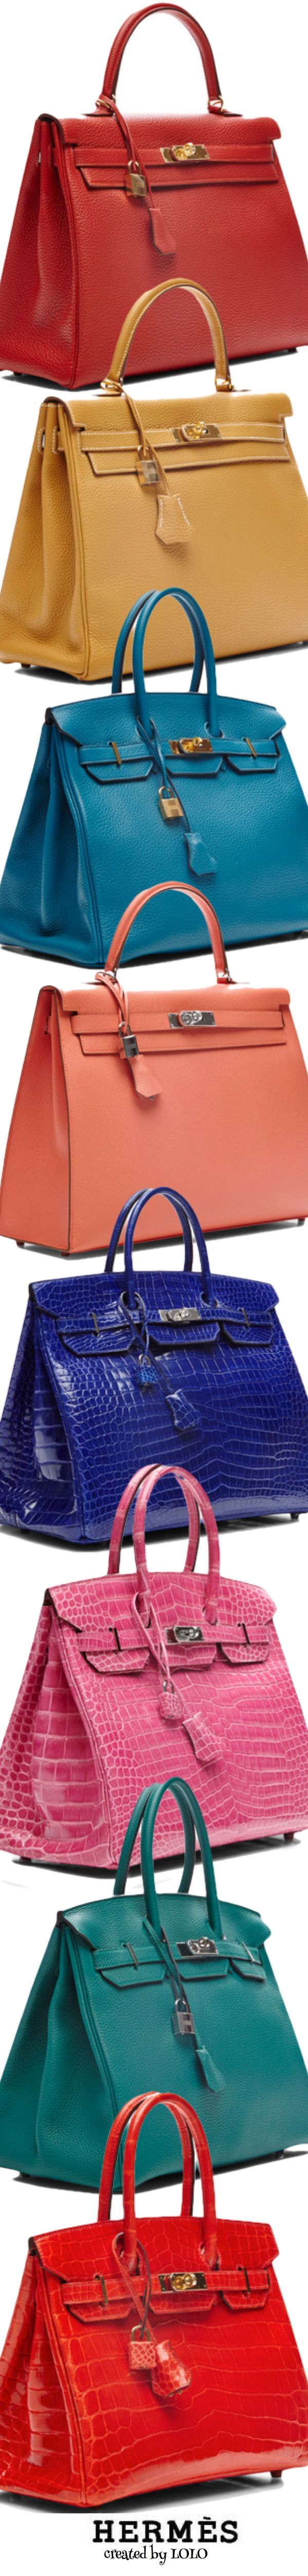 Vintage Hermès via Moda Operandi....one in every color of course | LOLO